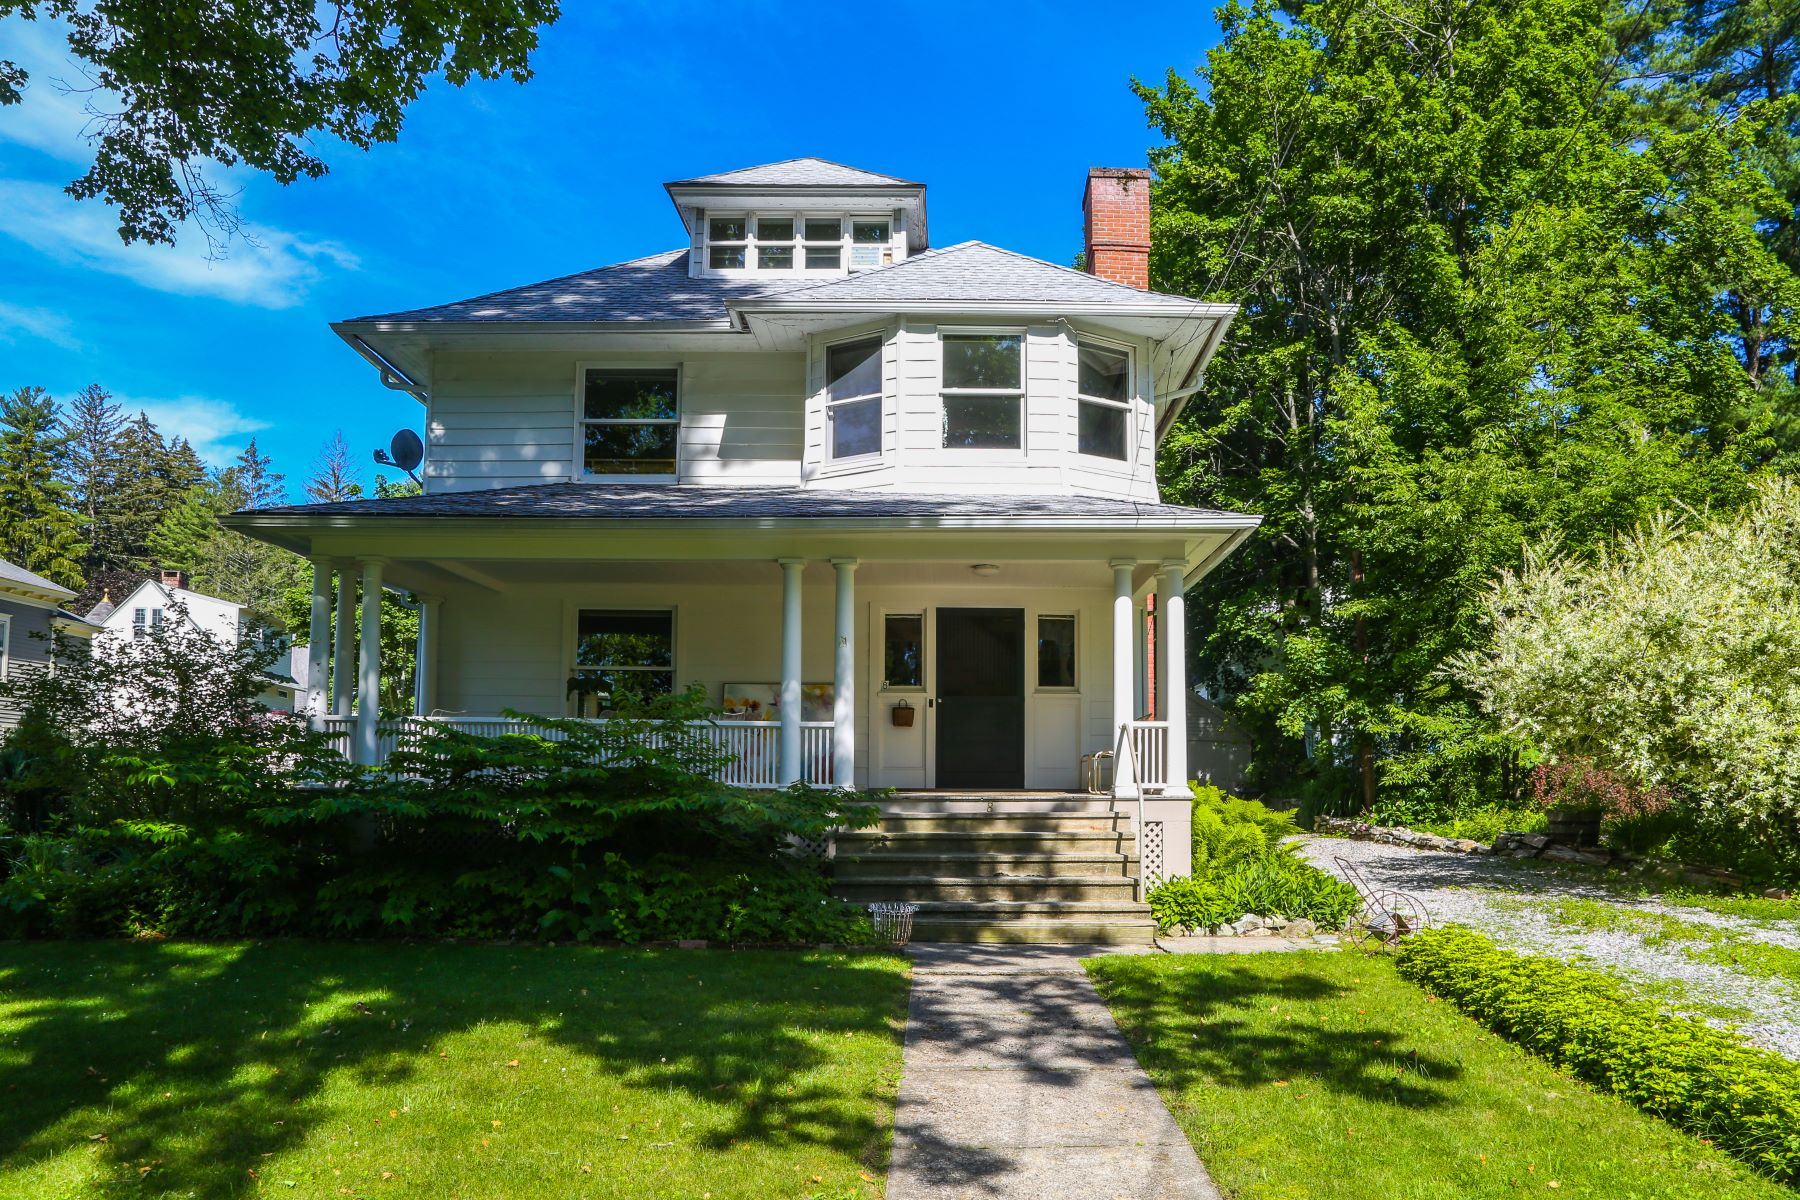 Single Family Home for Sale at Beautifully Maintained American Foursquare on The Hill 8 Oak St Great Barrington, Massachusetts 01230 United States